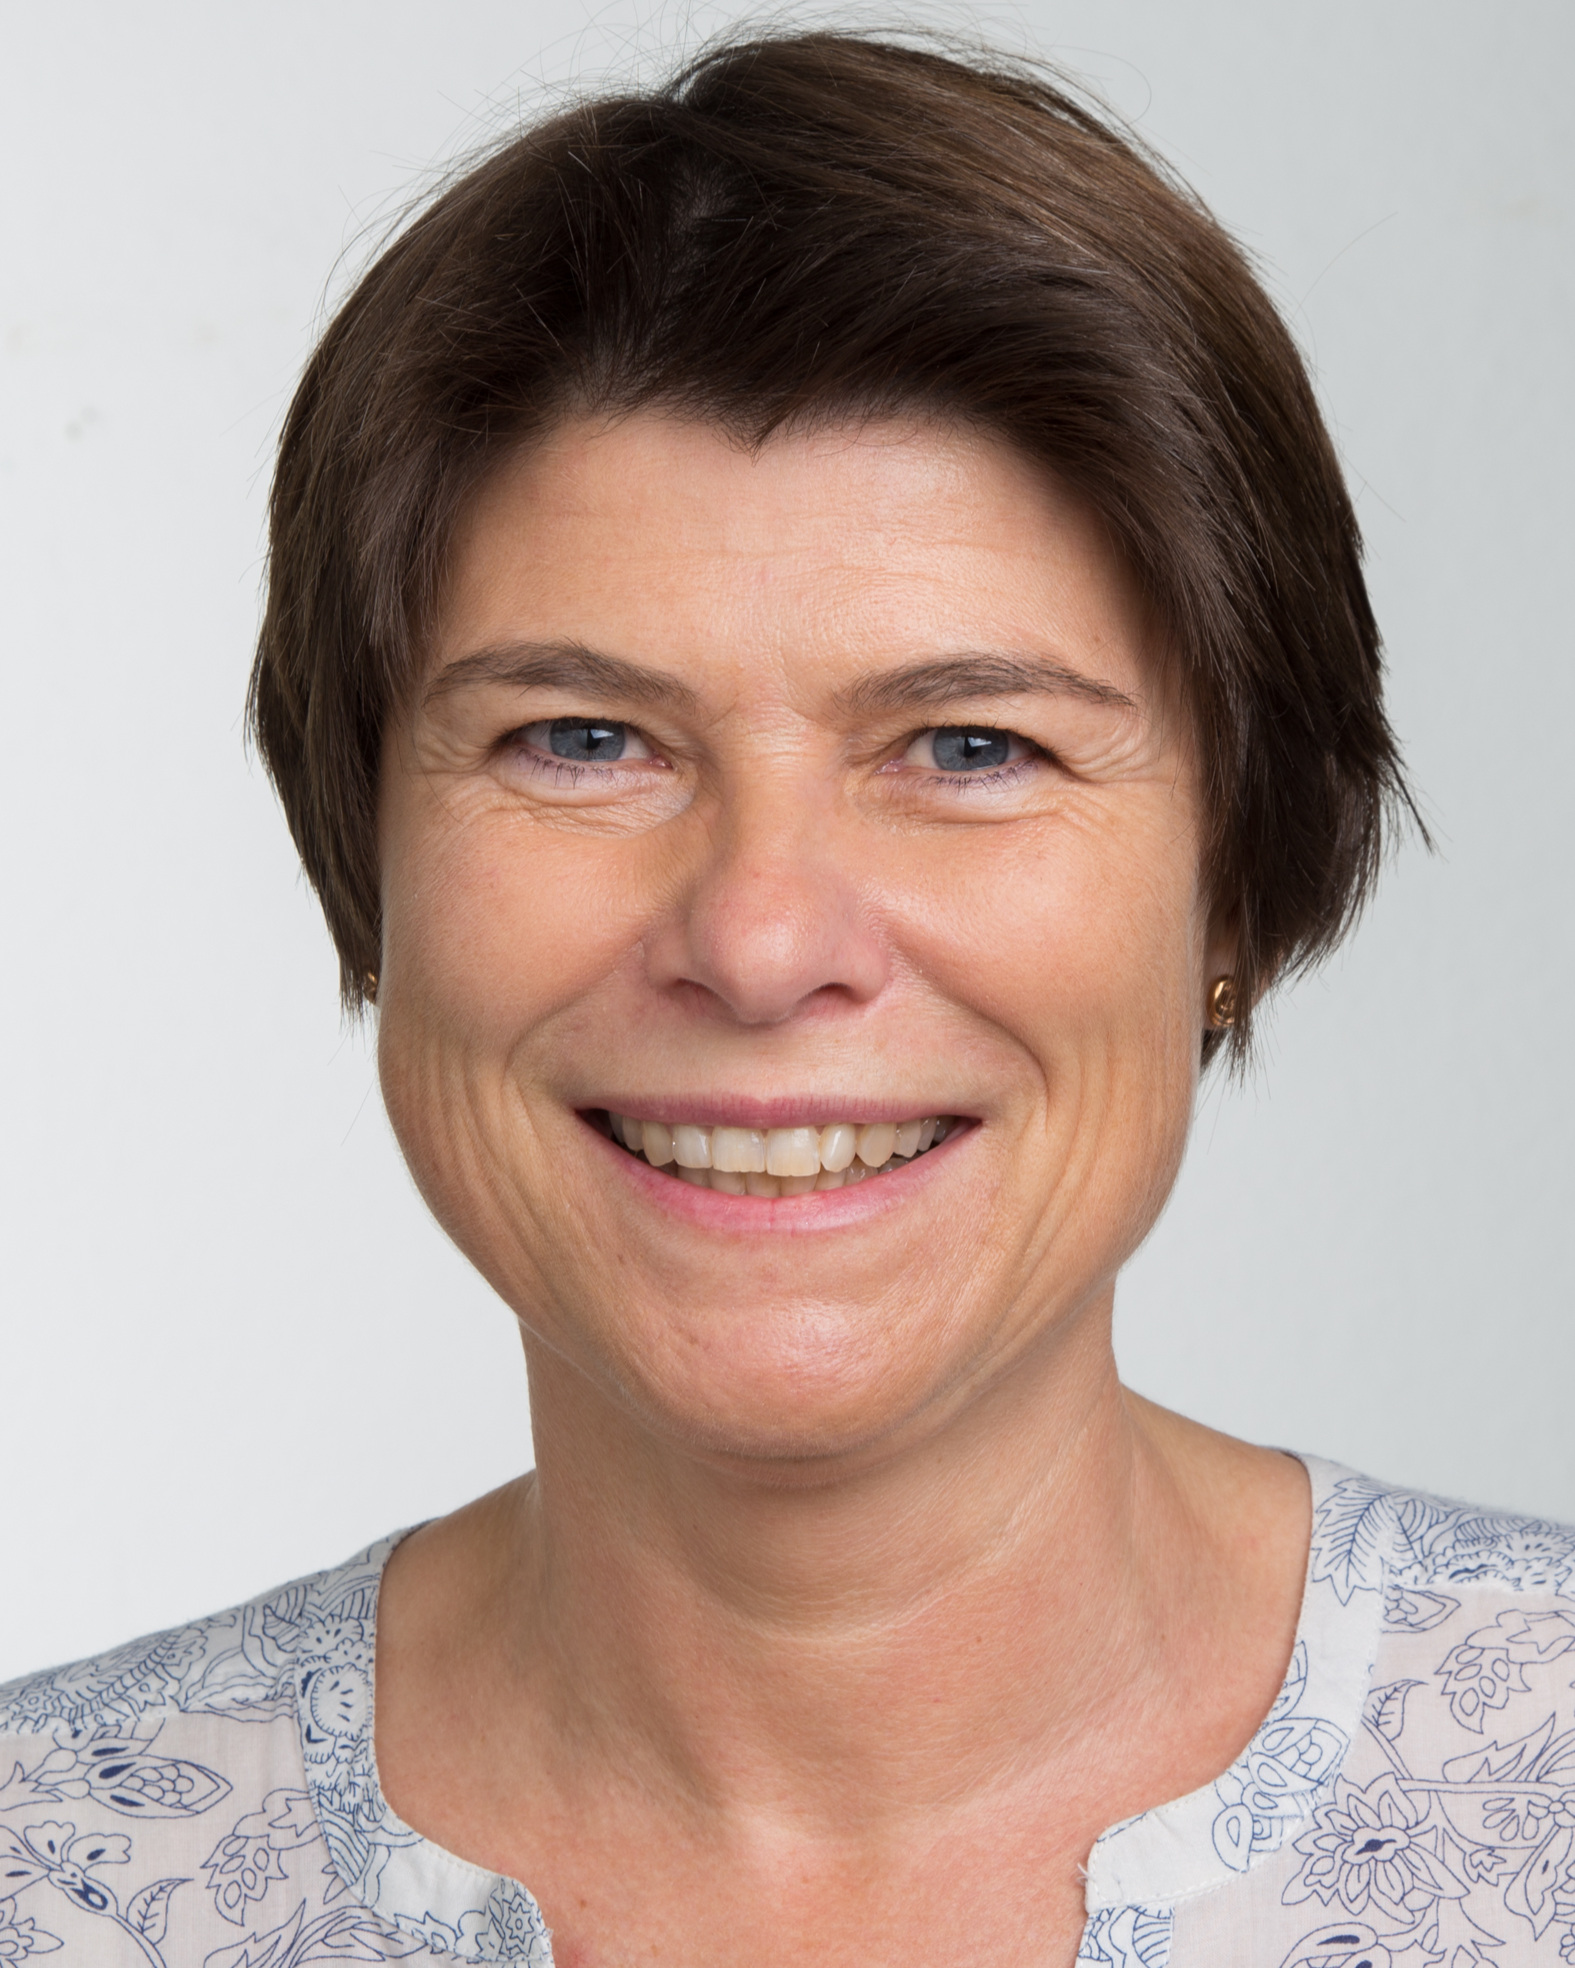 Bettina Bauerfeind, Konrektorin